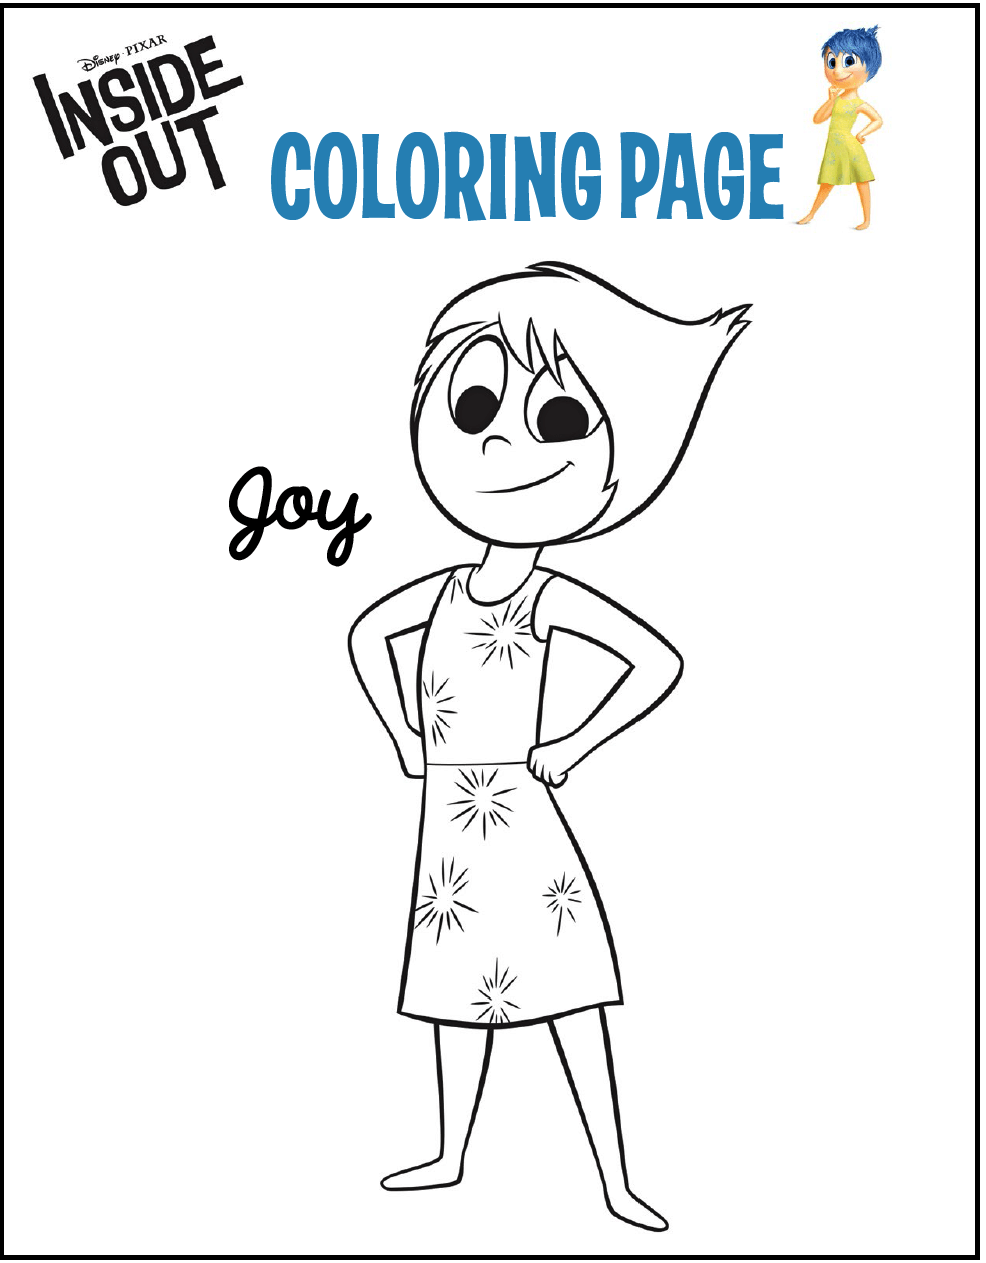 joy from inside out coloring page | animation series coloring and ...